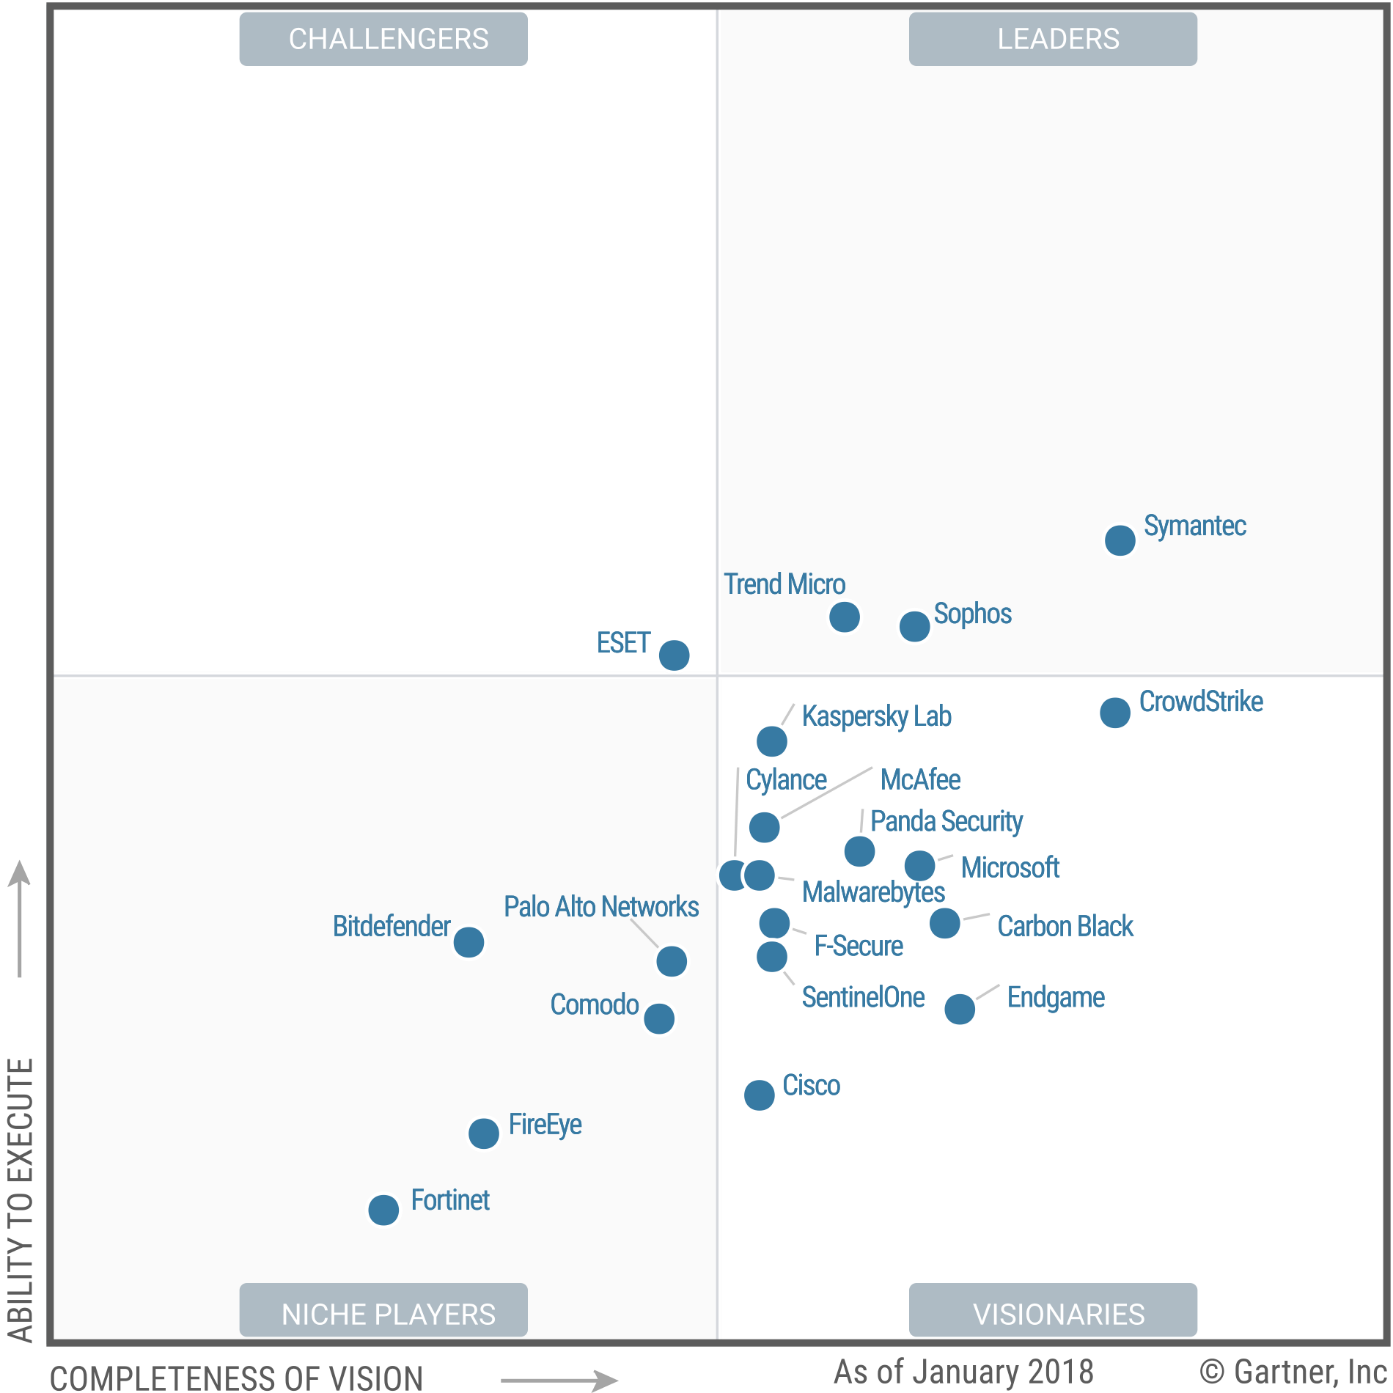 Magic Quadrant for Endpoint Protection Platforms 2018 (G00325704)